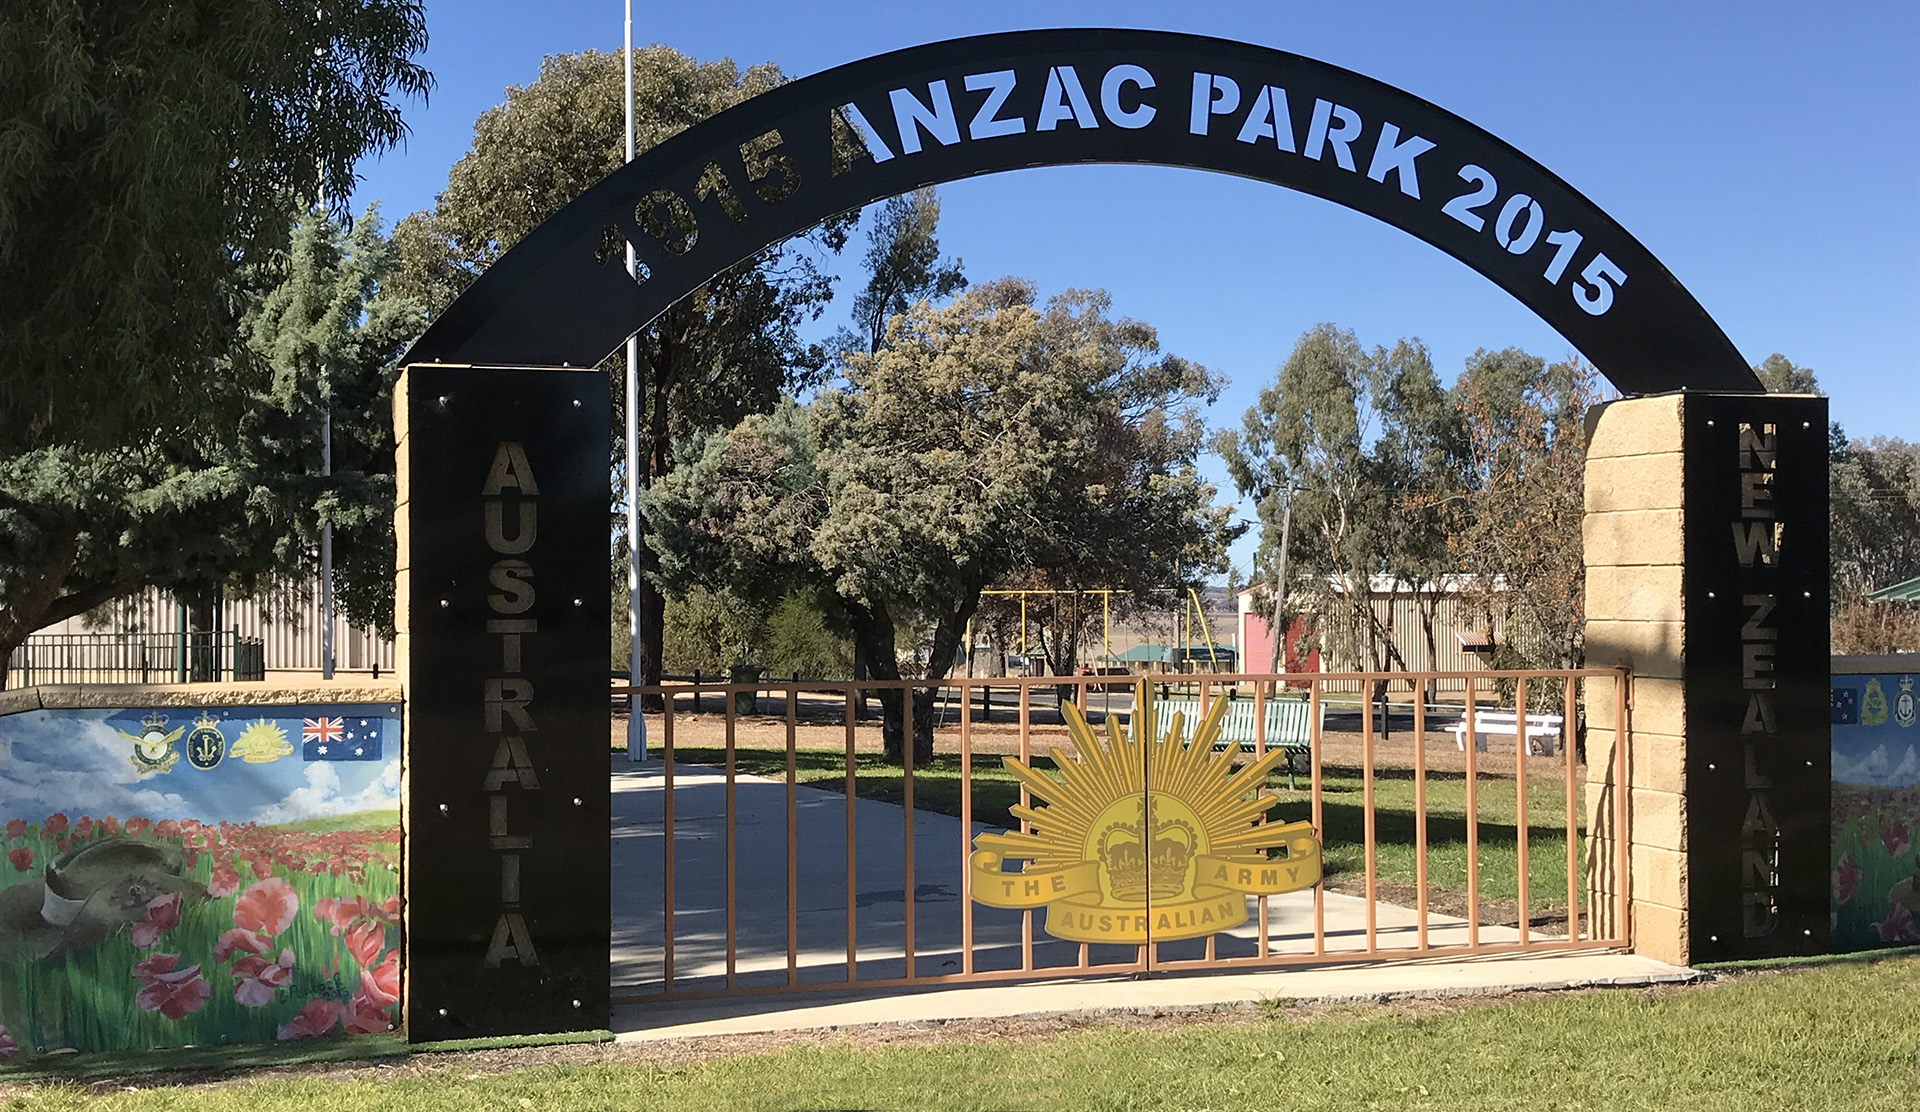 Delungra Anzac Park and Memorial Gates. Provided by Graham Wilson, 2021.